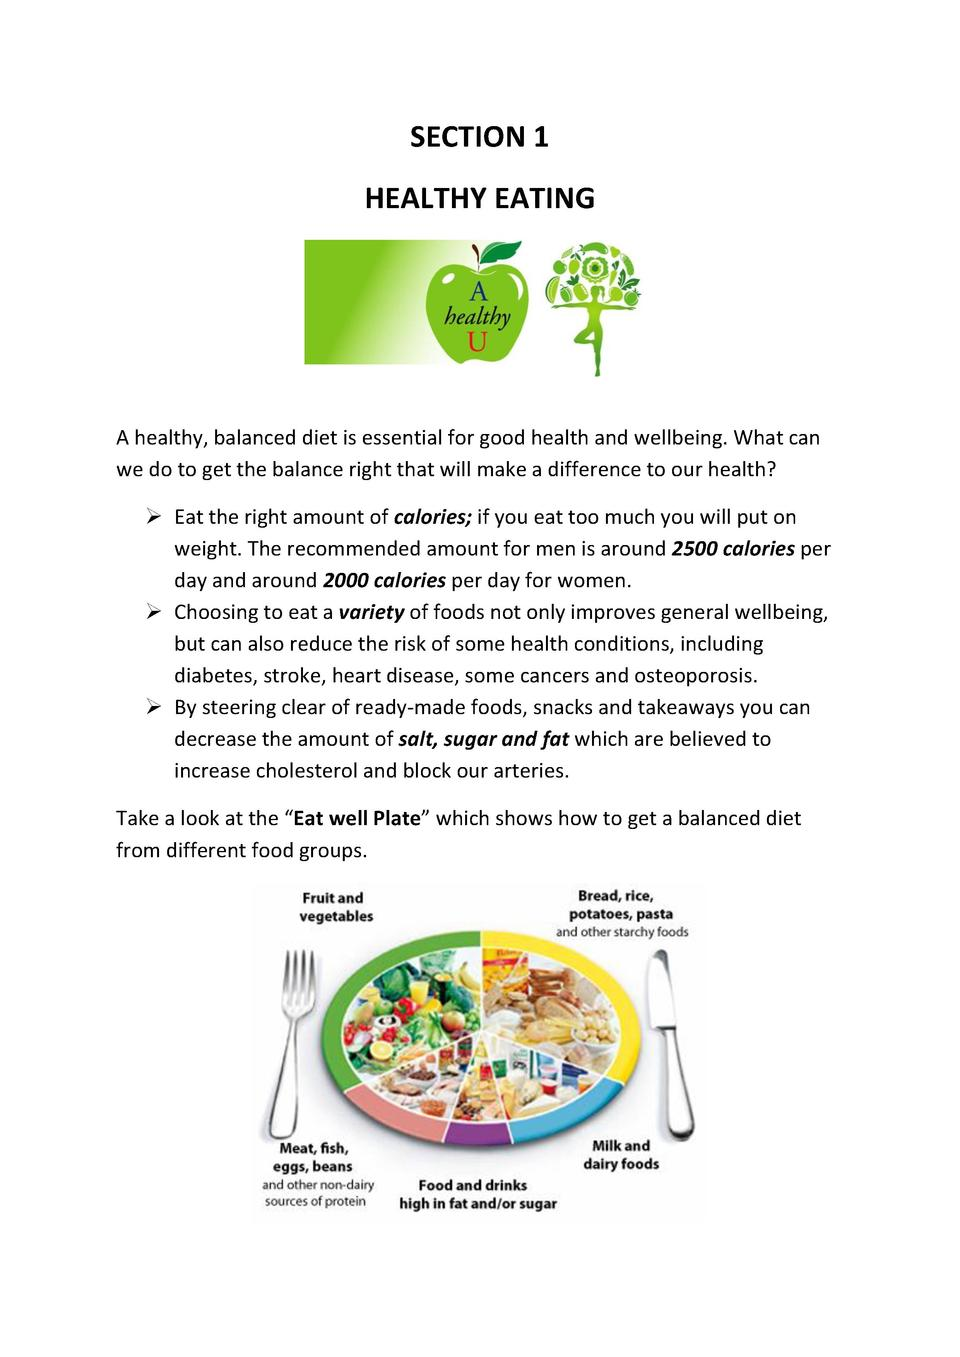 SECTION 1 HEALTHY EATING  A healthy, balanced diet is essential for good health and wellbeing. What can we do to get the b...